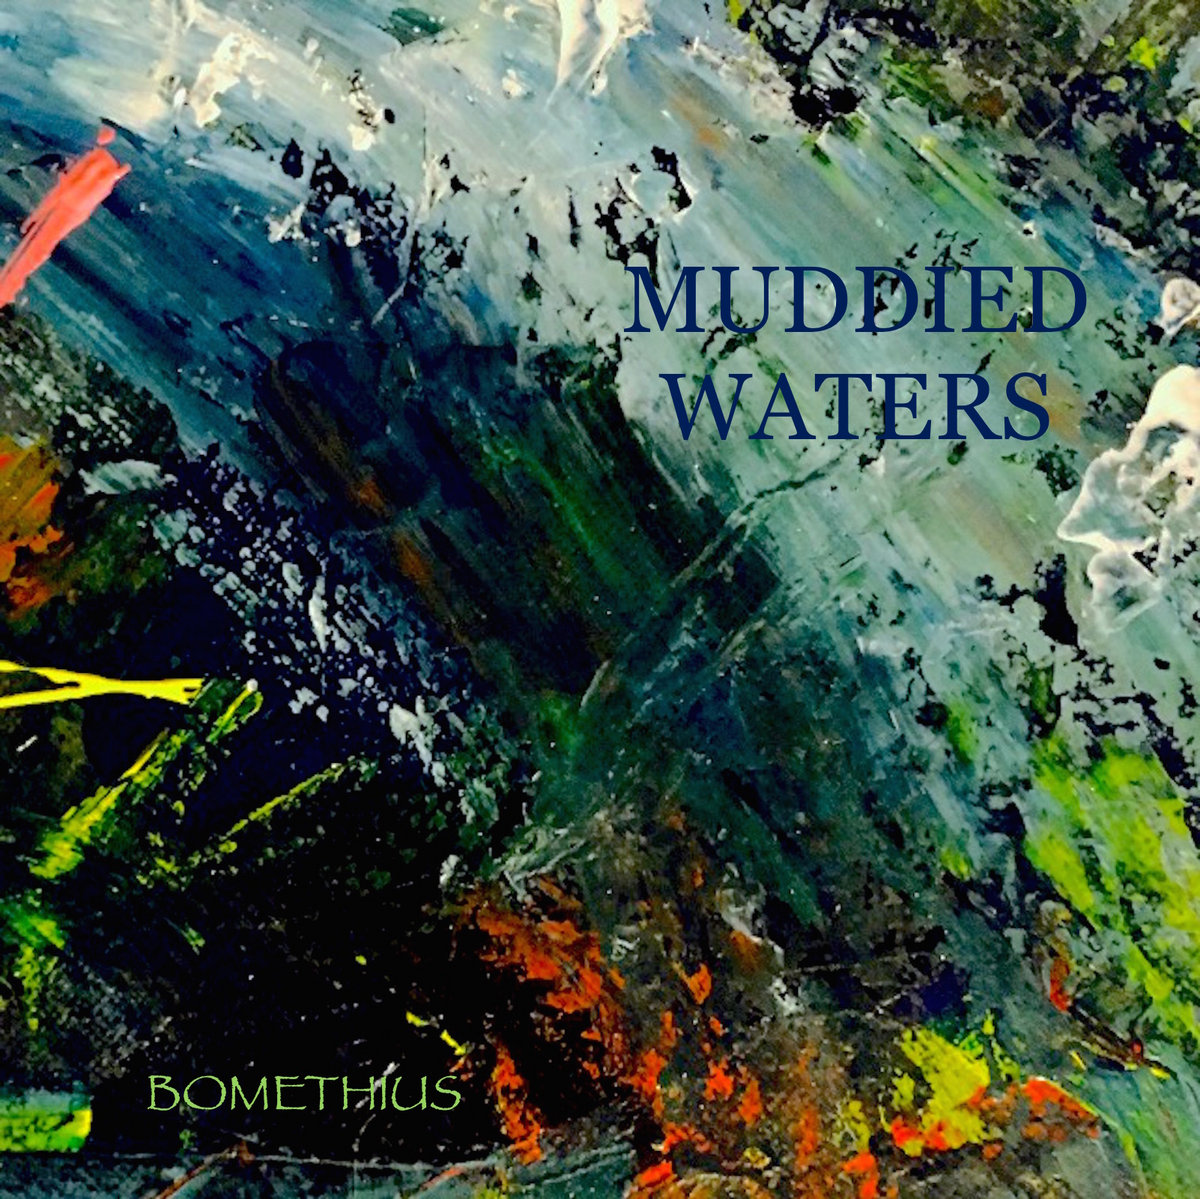 Muddied Waters by Bomethius